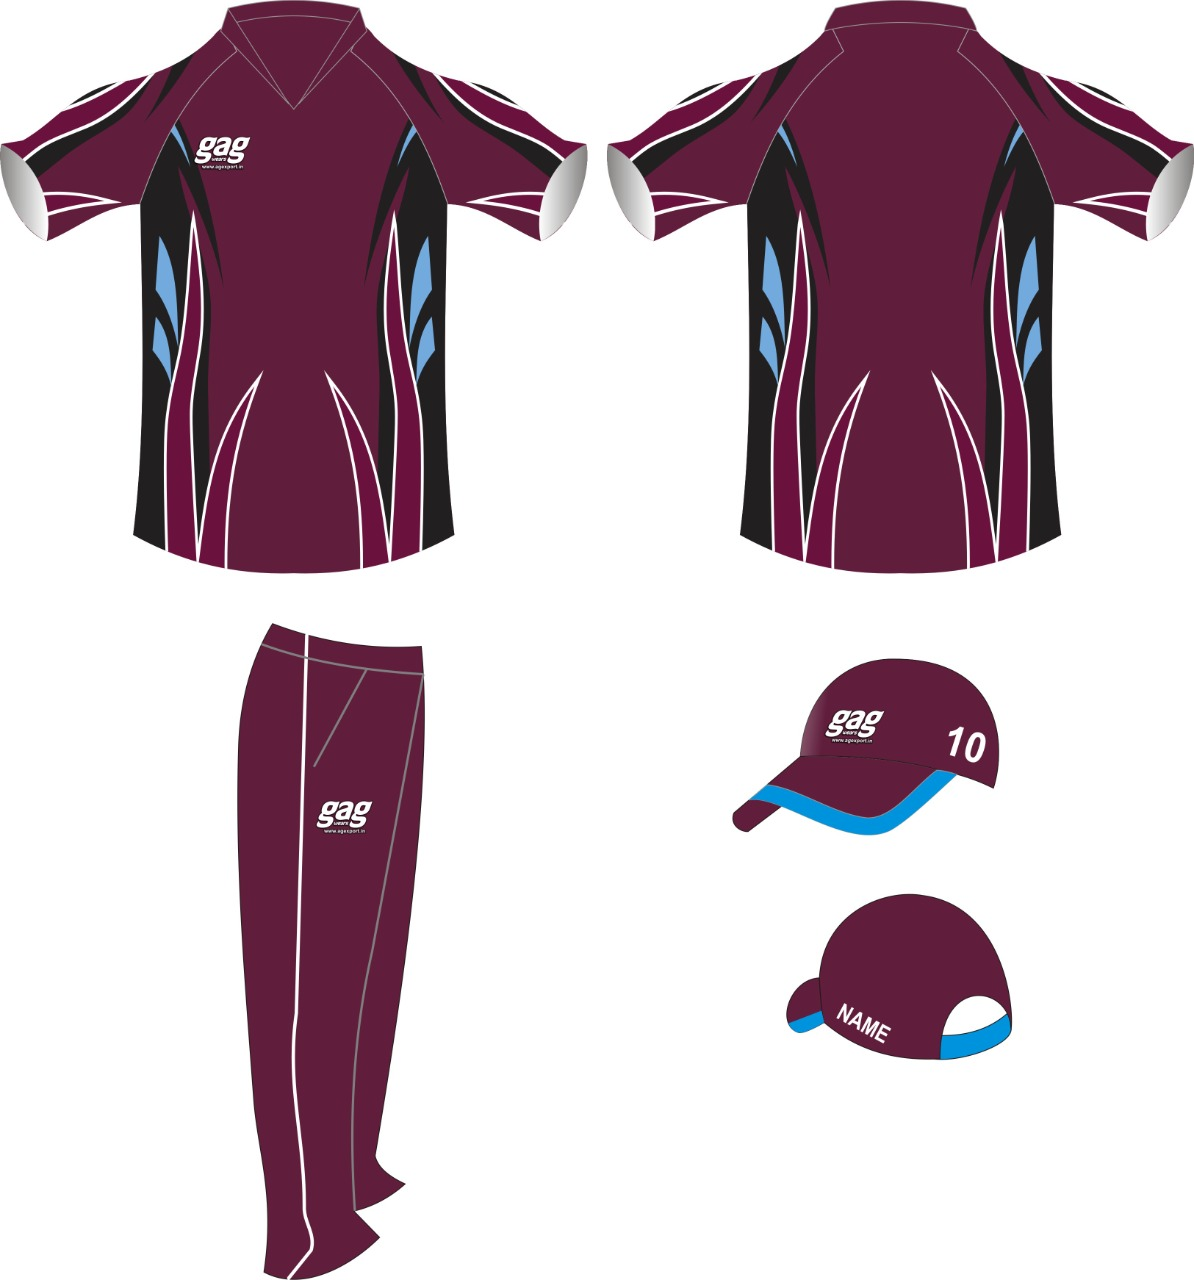 Womens Cricket Uniform Manufacturers in Jalandhar in Bangladesh